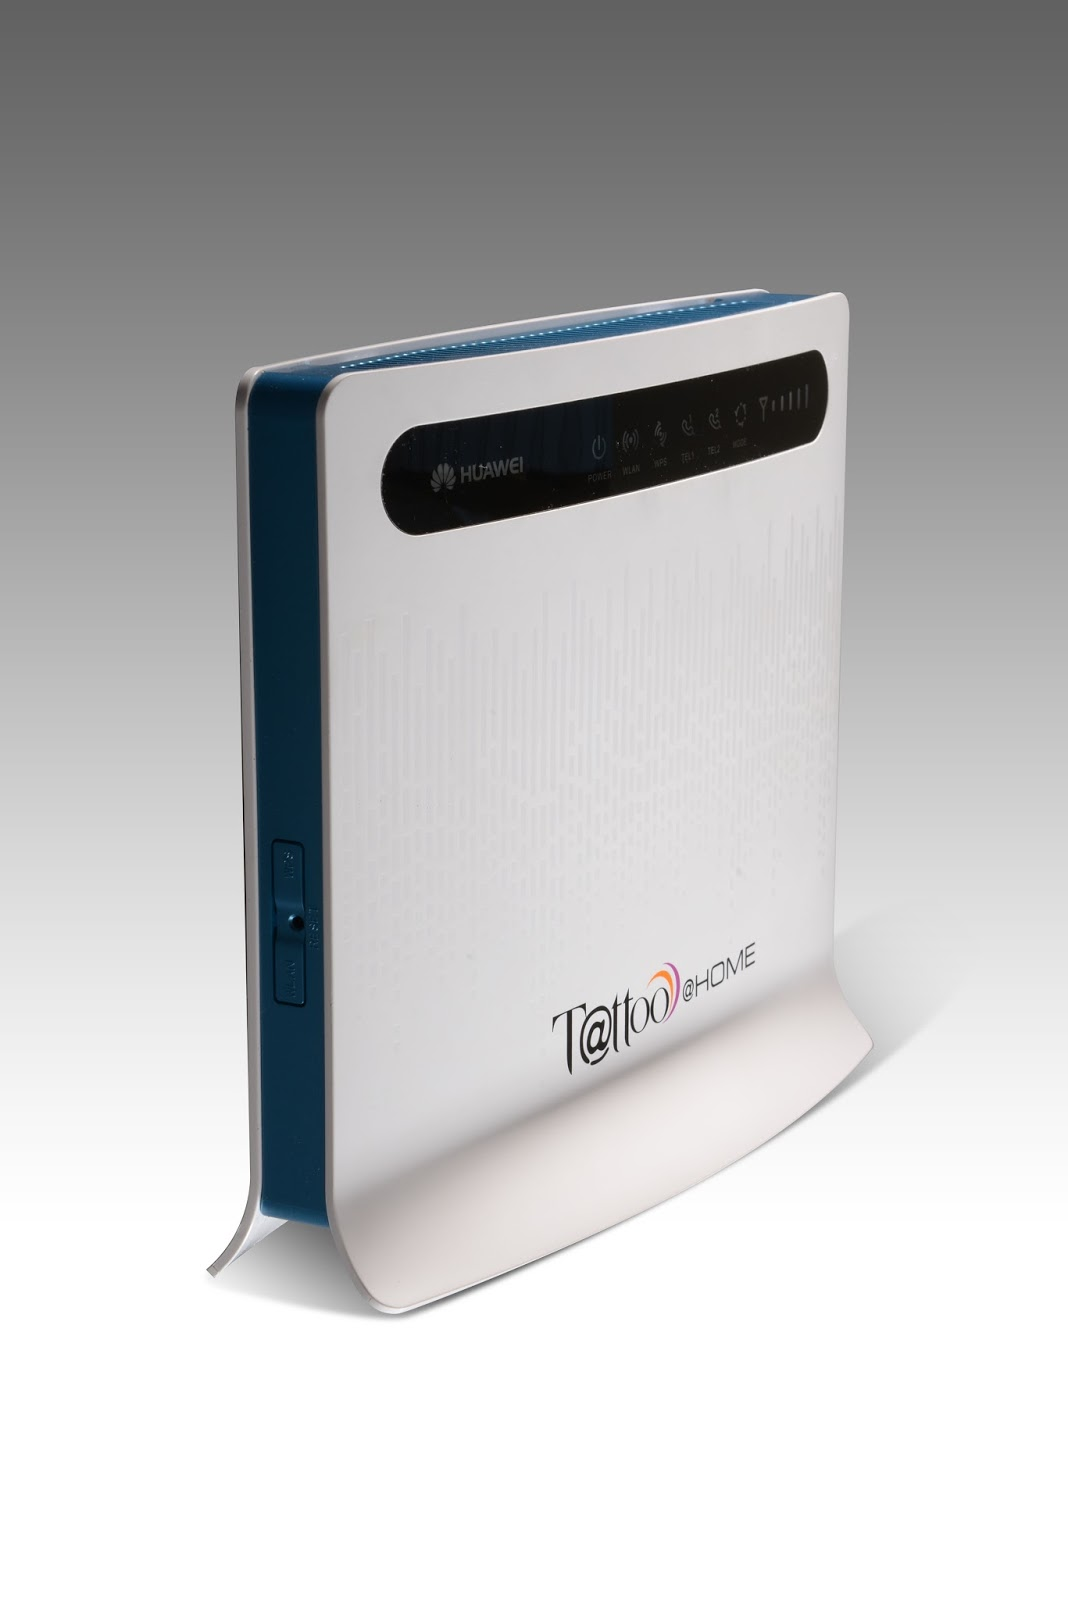 Sellers of Hacked Globe Wimax modem offering free internet access